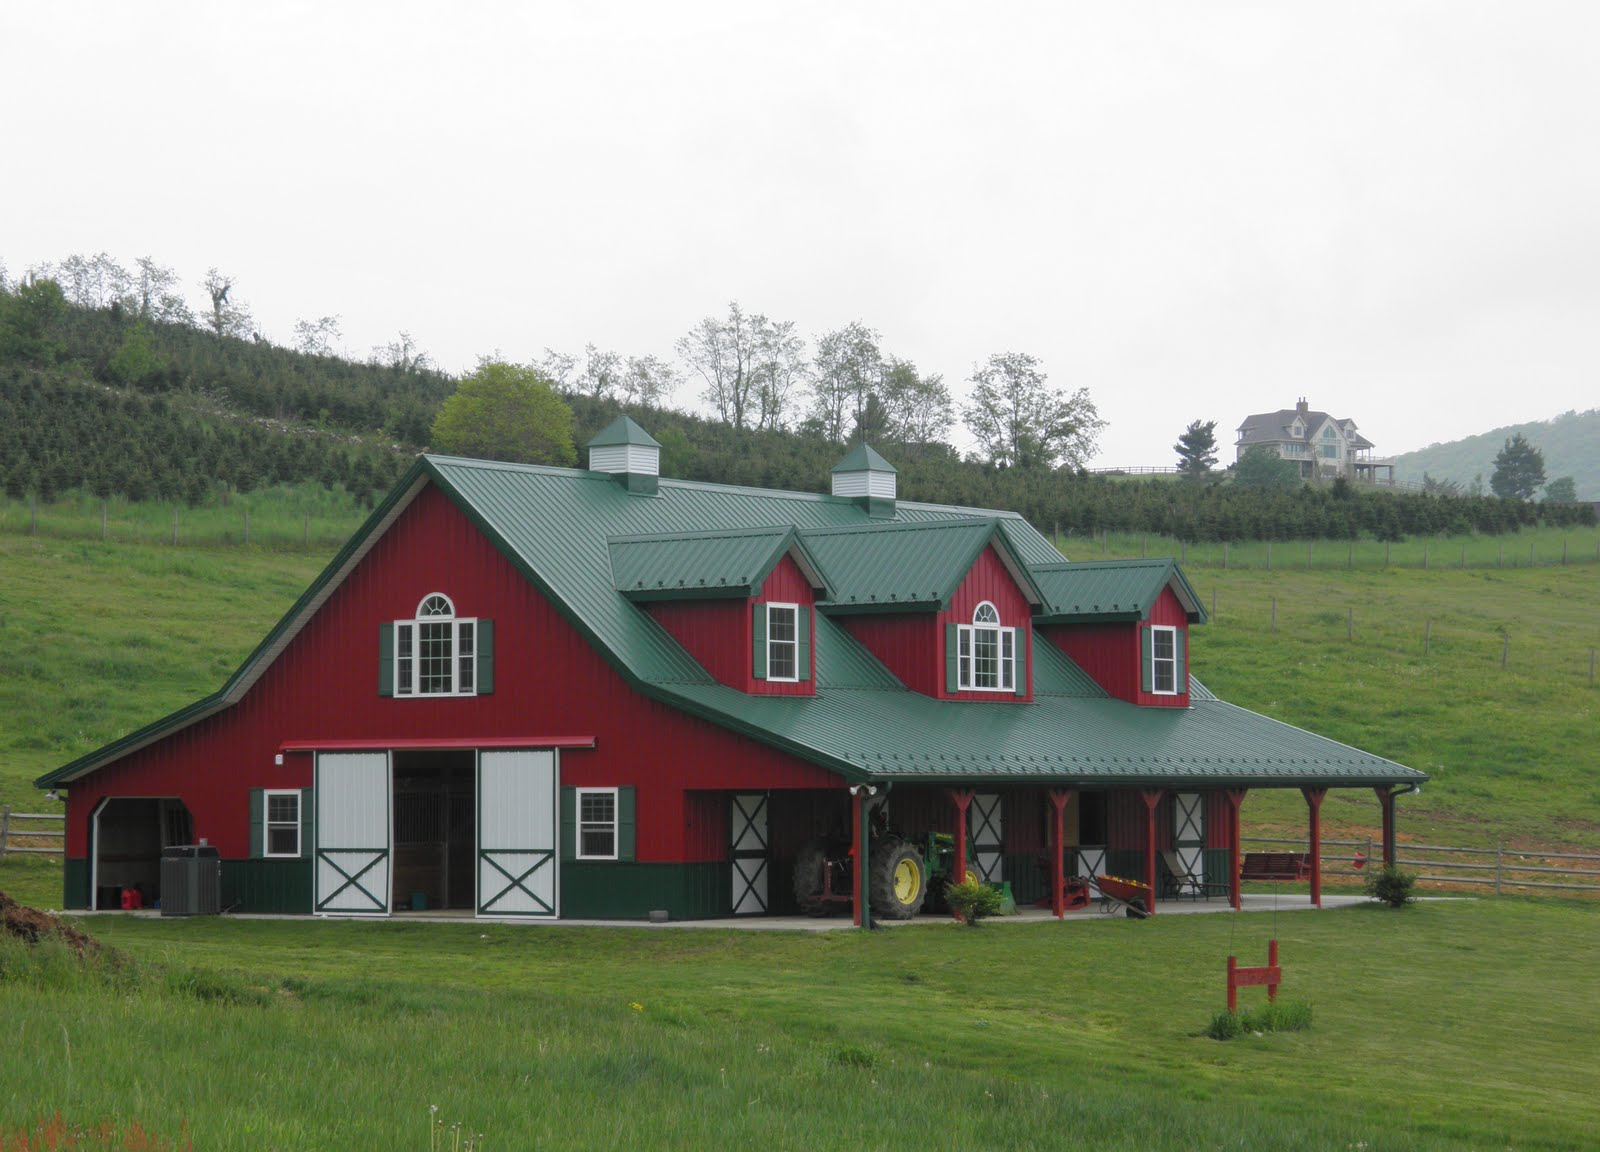 Barnhouse on pinterest barndominium barn houses and for Barnhouse builders